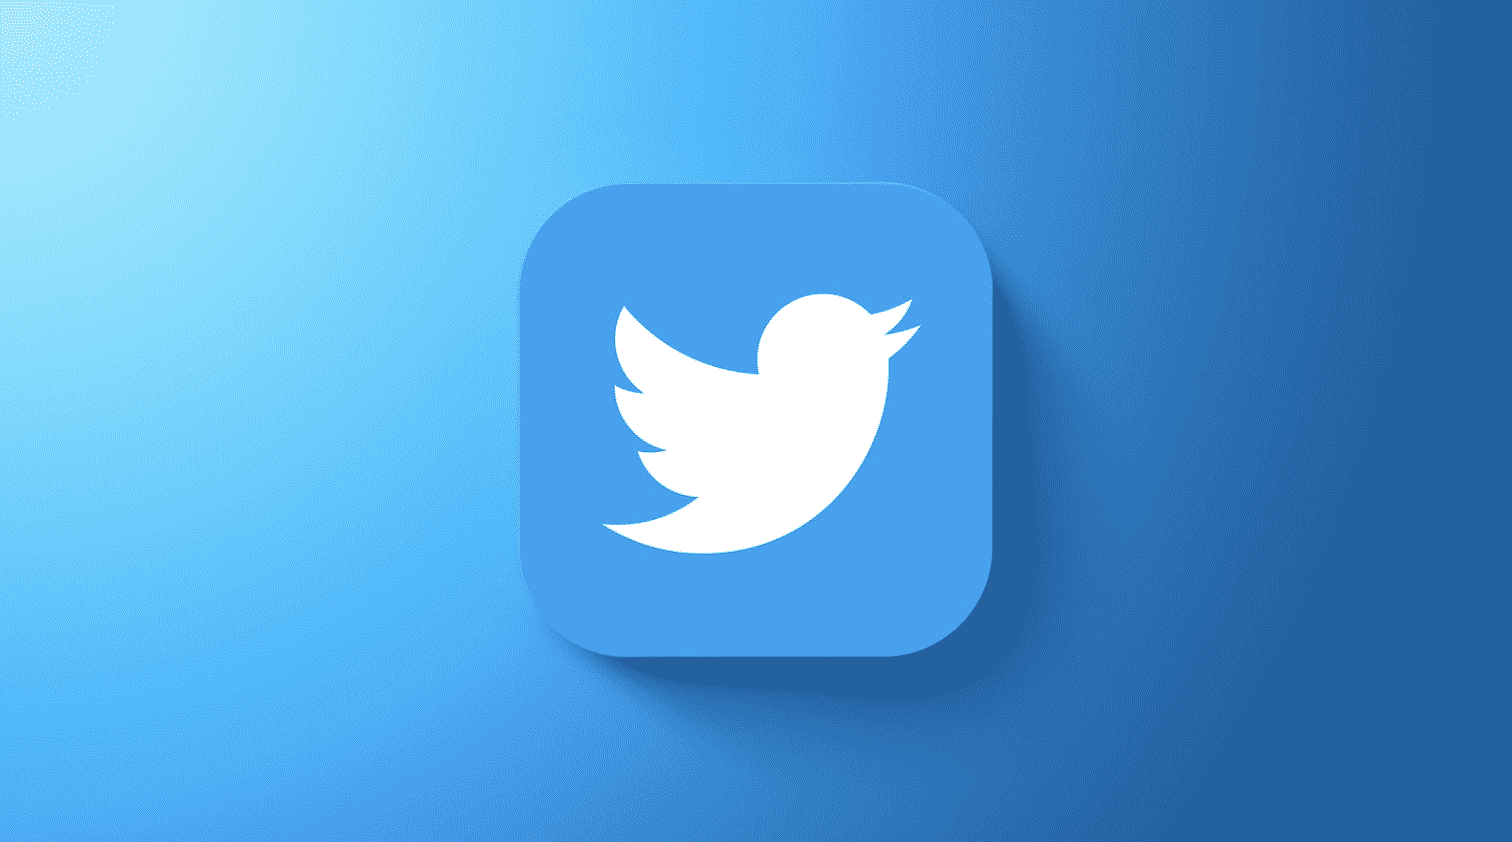 Twitter working on Bitcoin tip feature